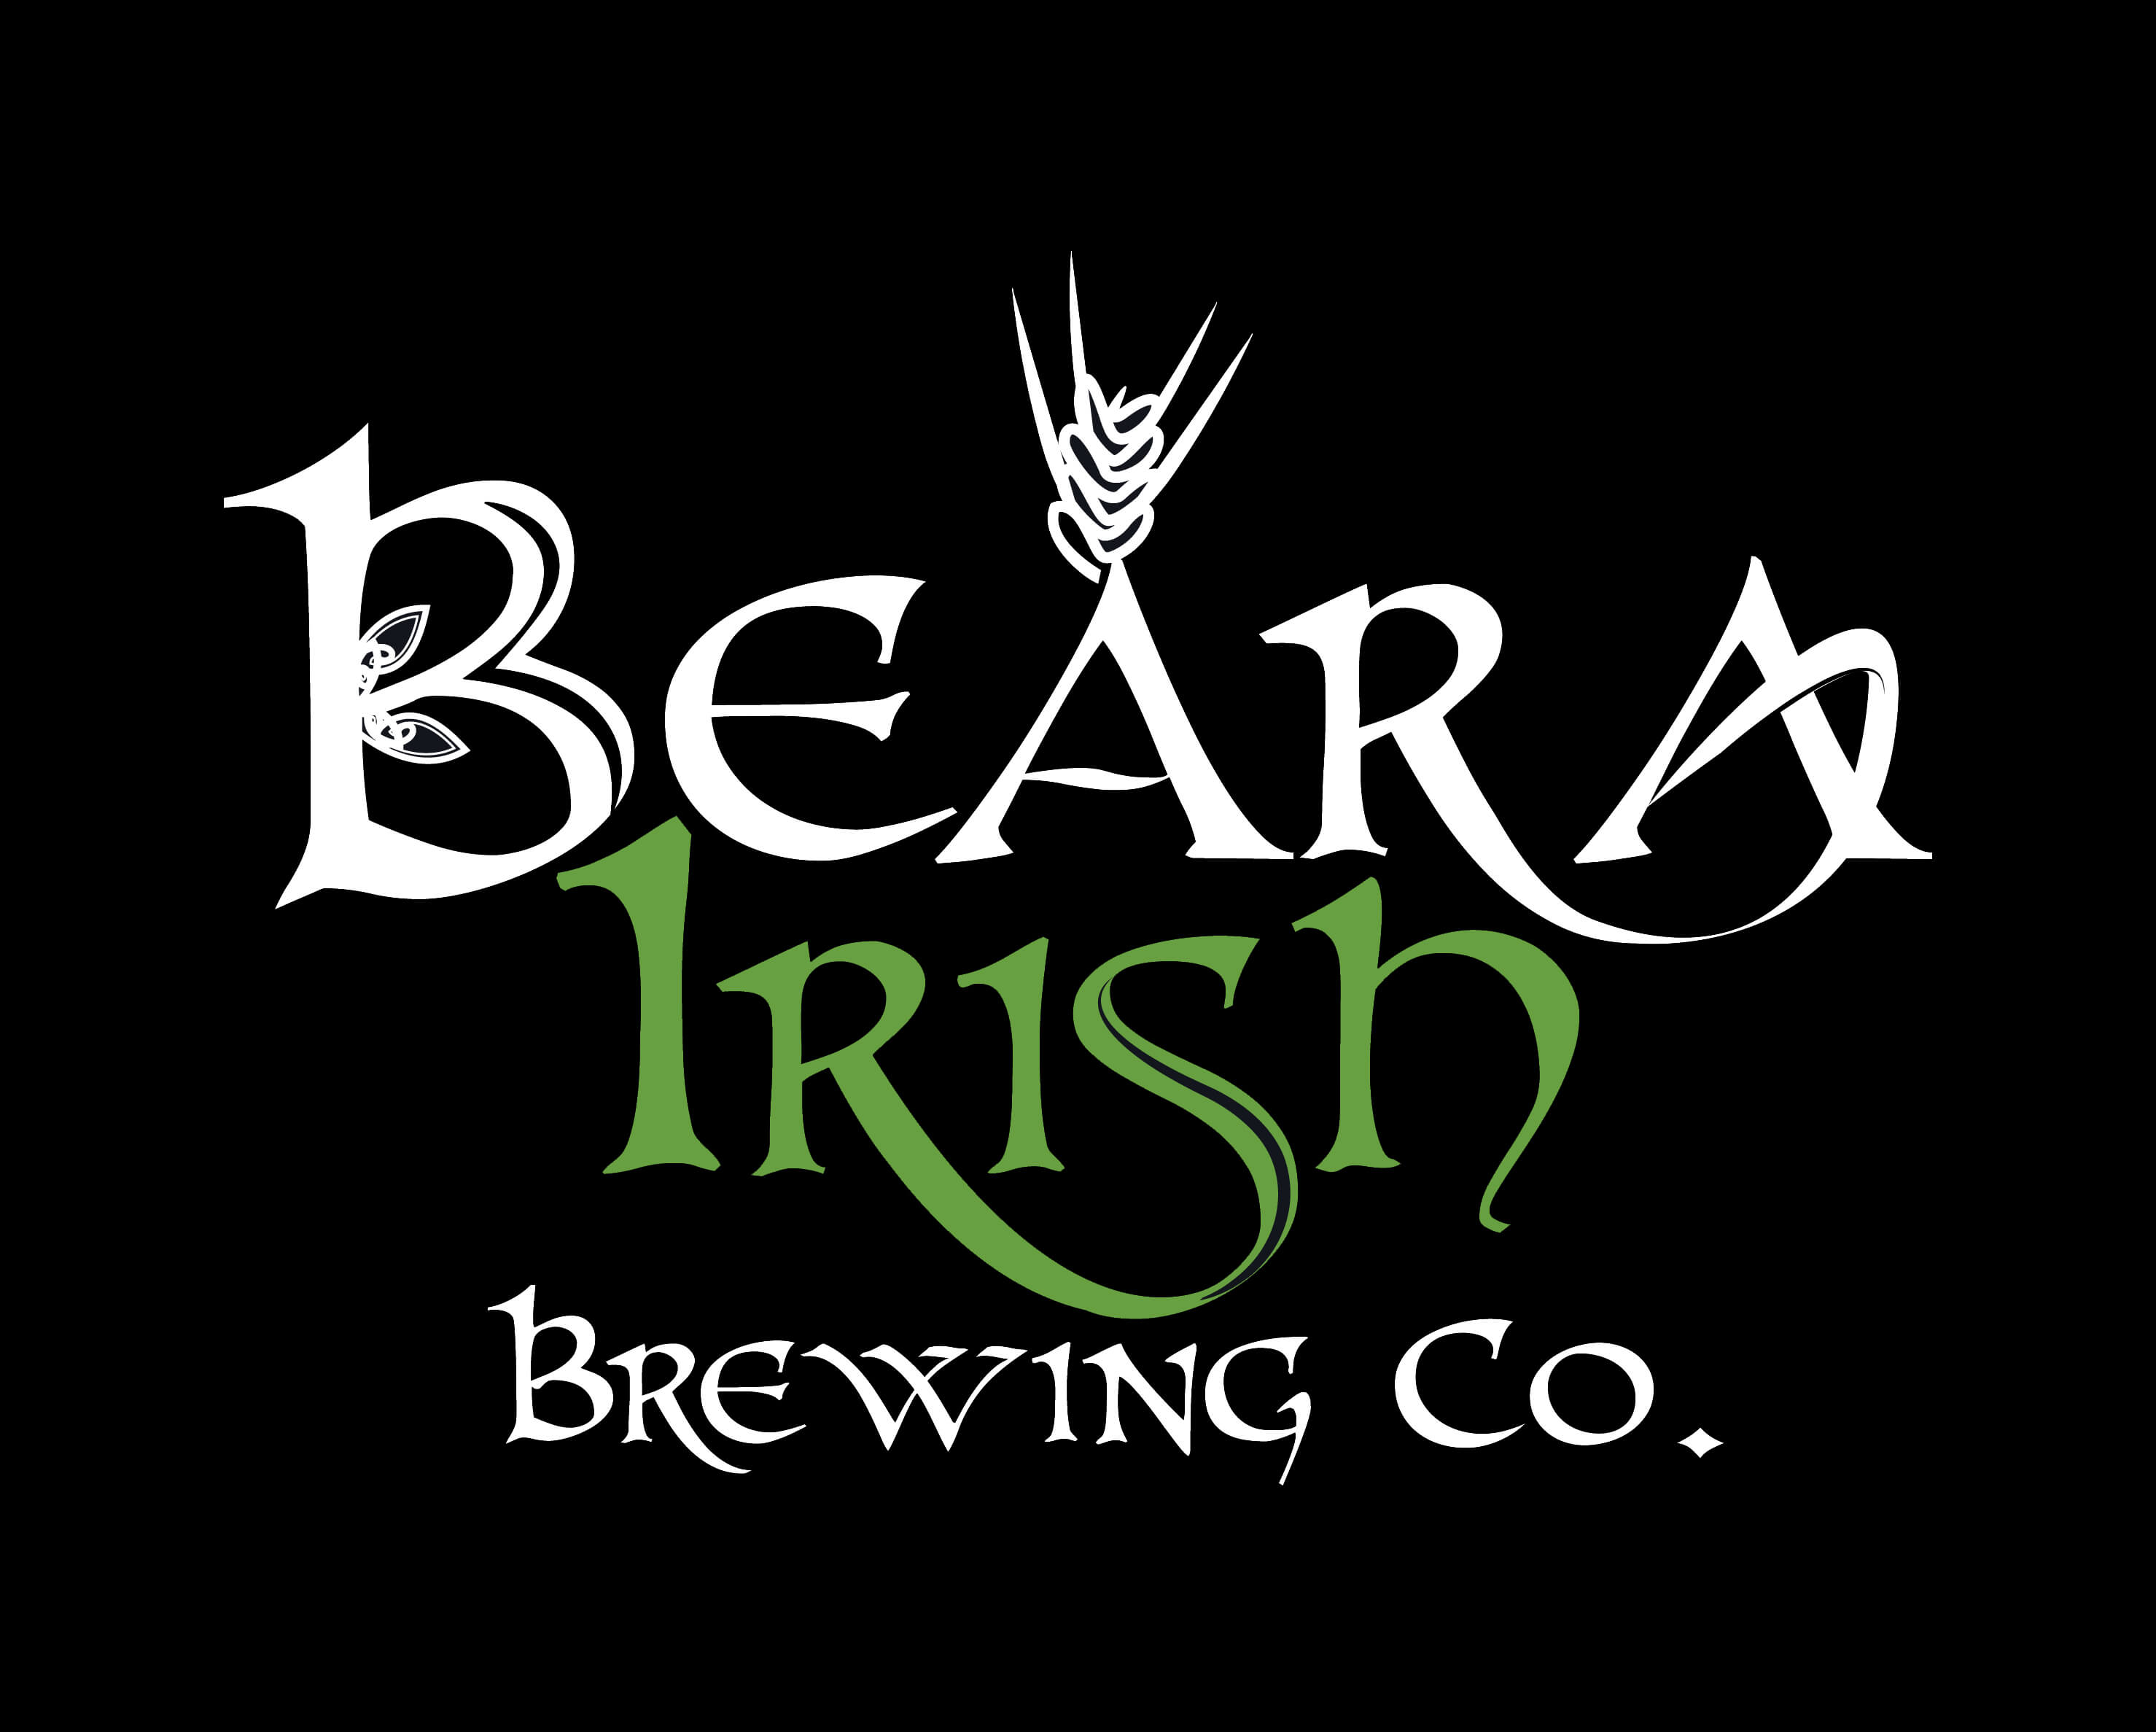 Beara Irish Brewing Company logo